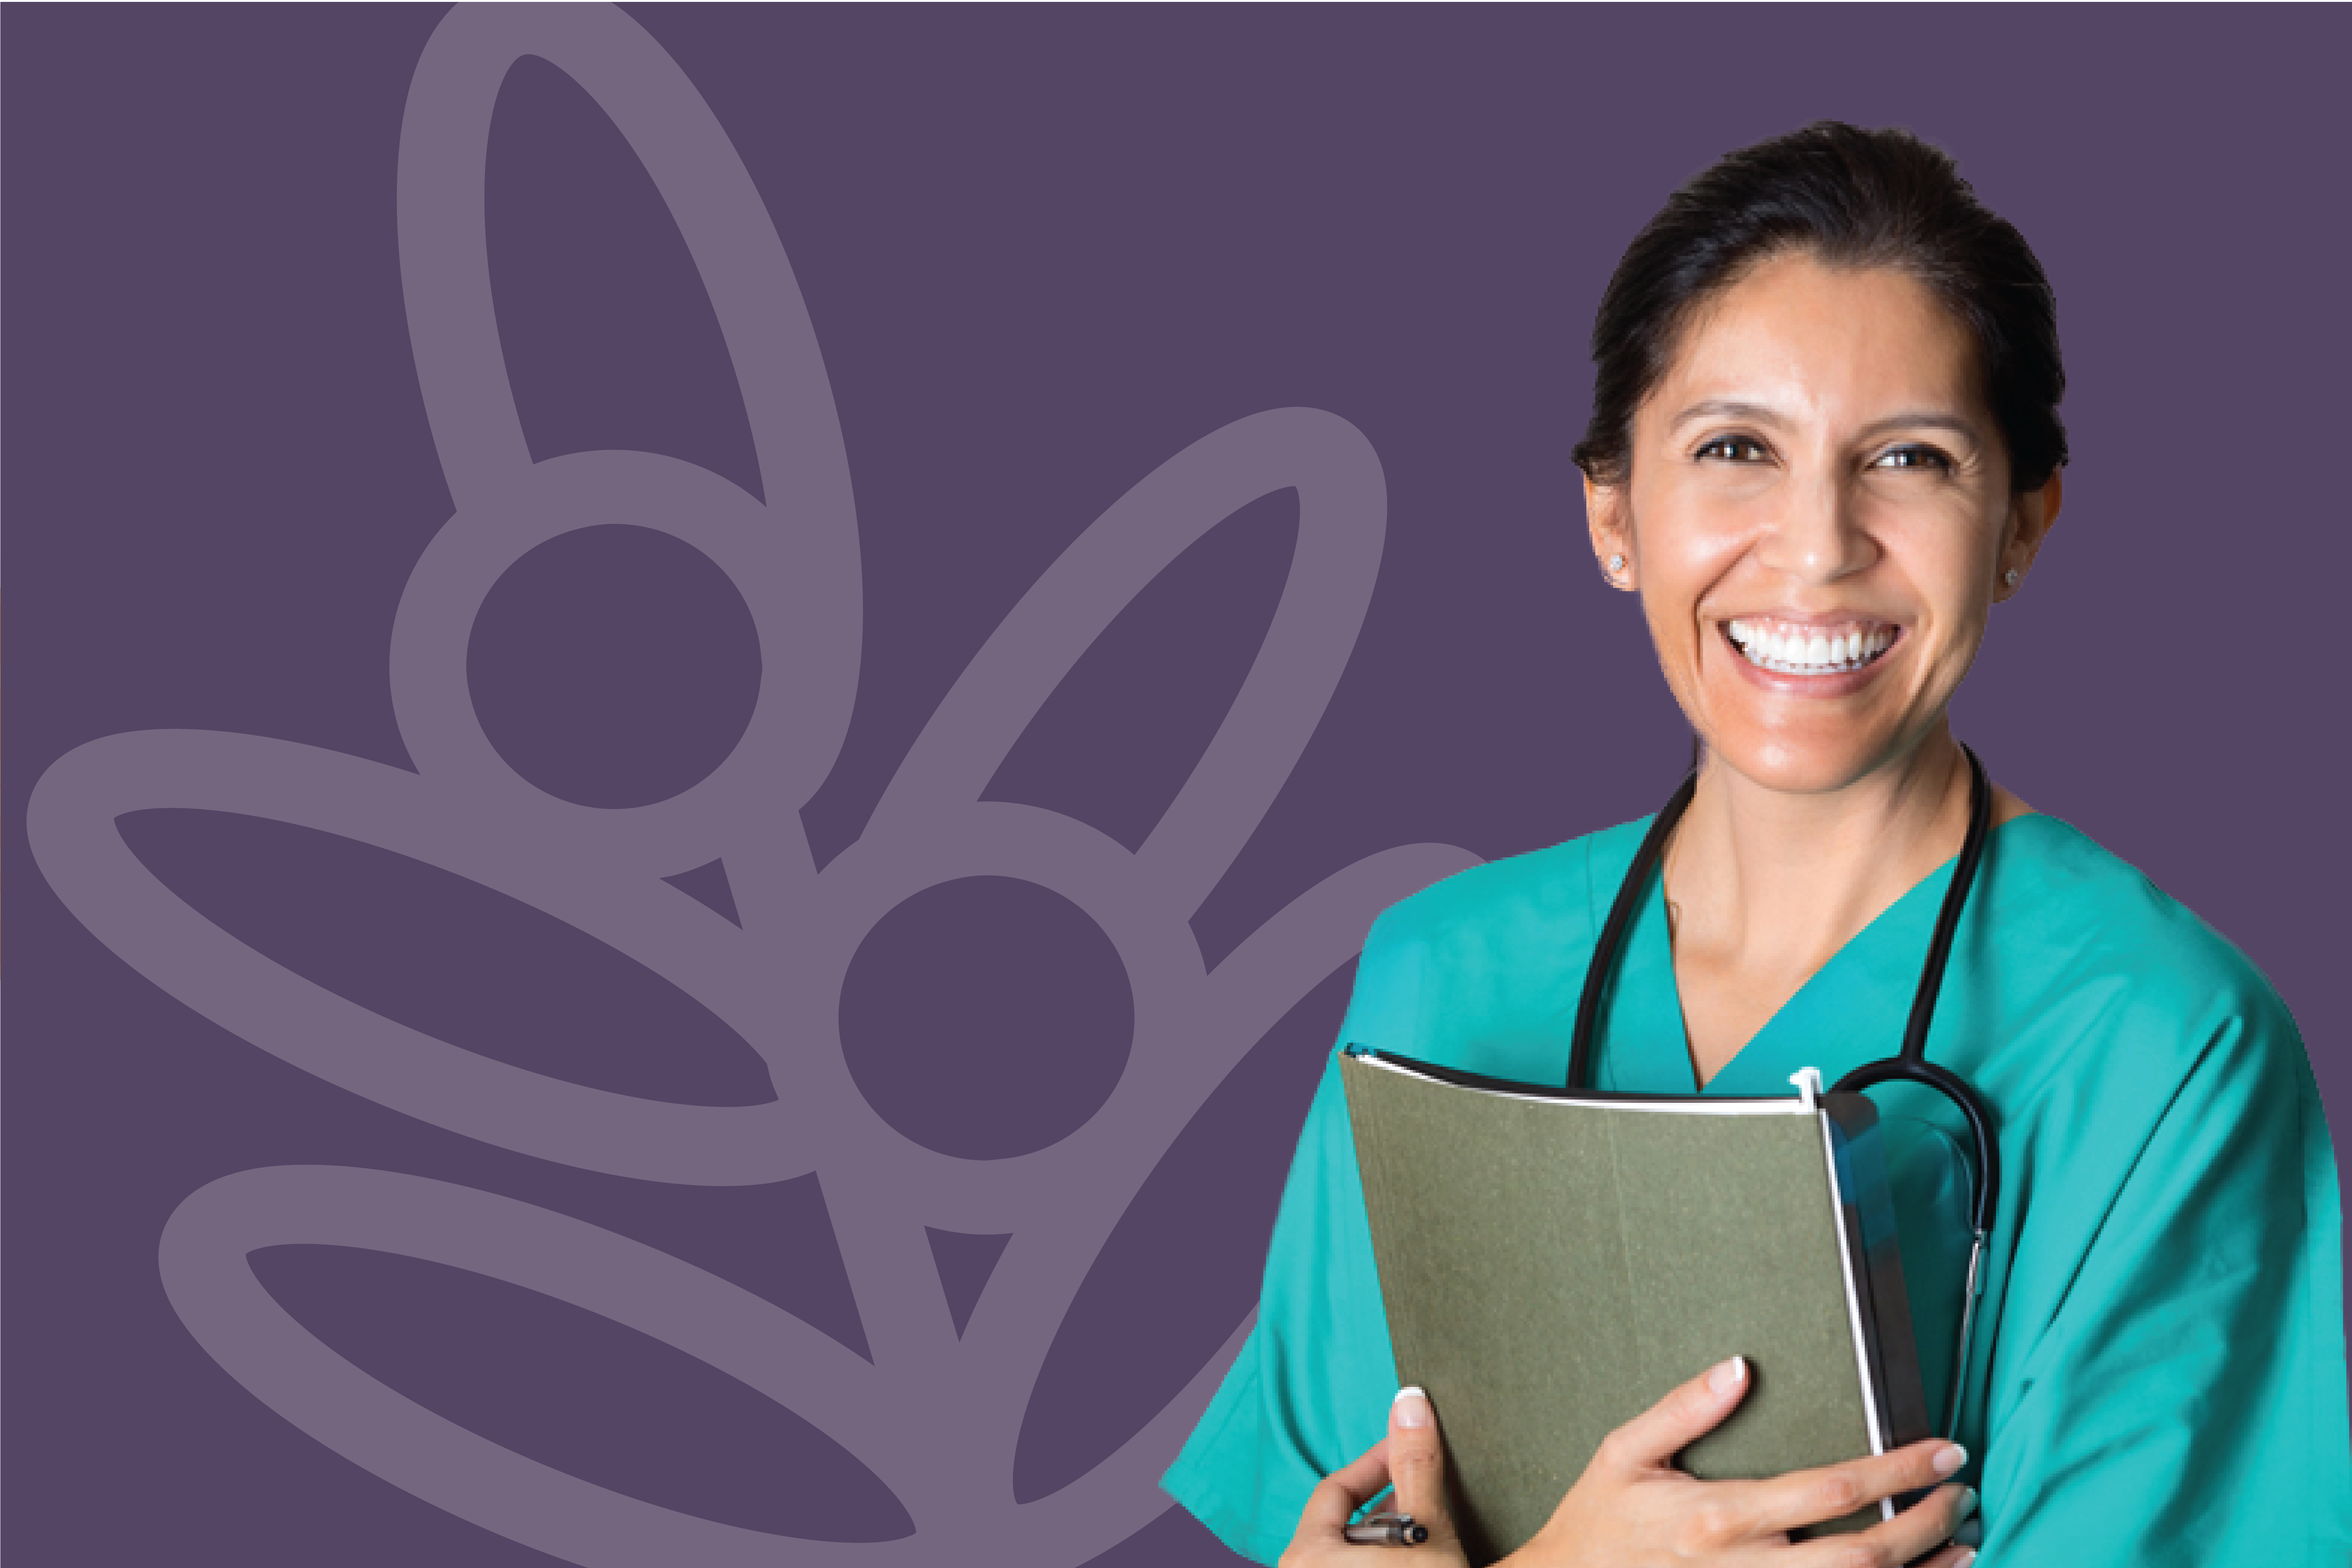 Nurse with paperwork standing in front of a purple wall with the acacia logo